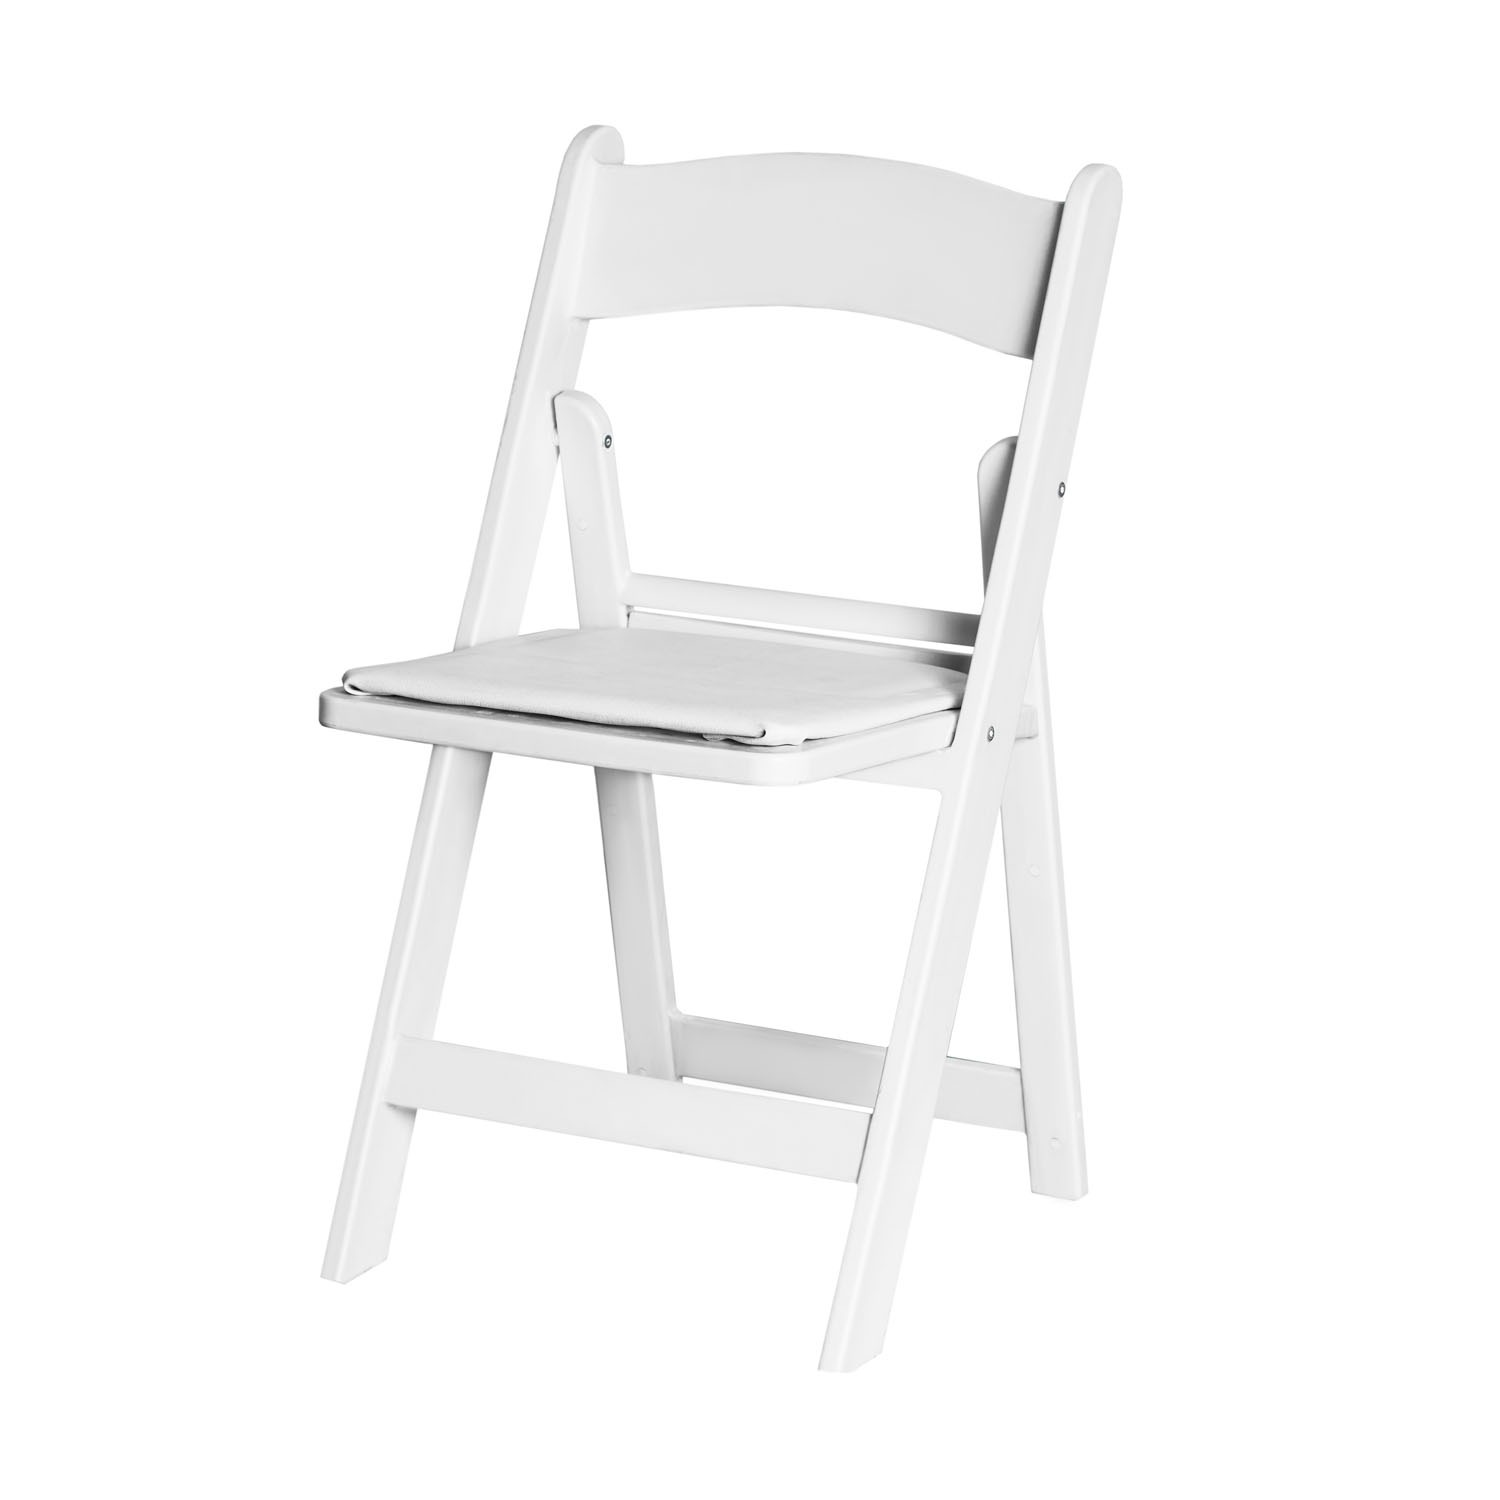 White Plastic Wimbledon Chair - For Hire Online | EHIRE